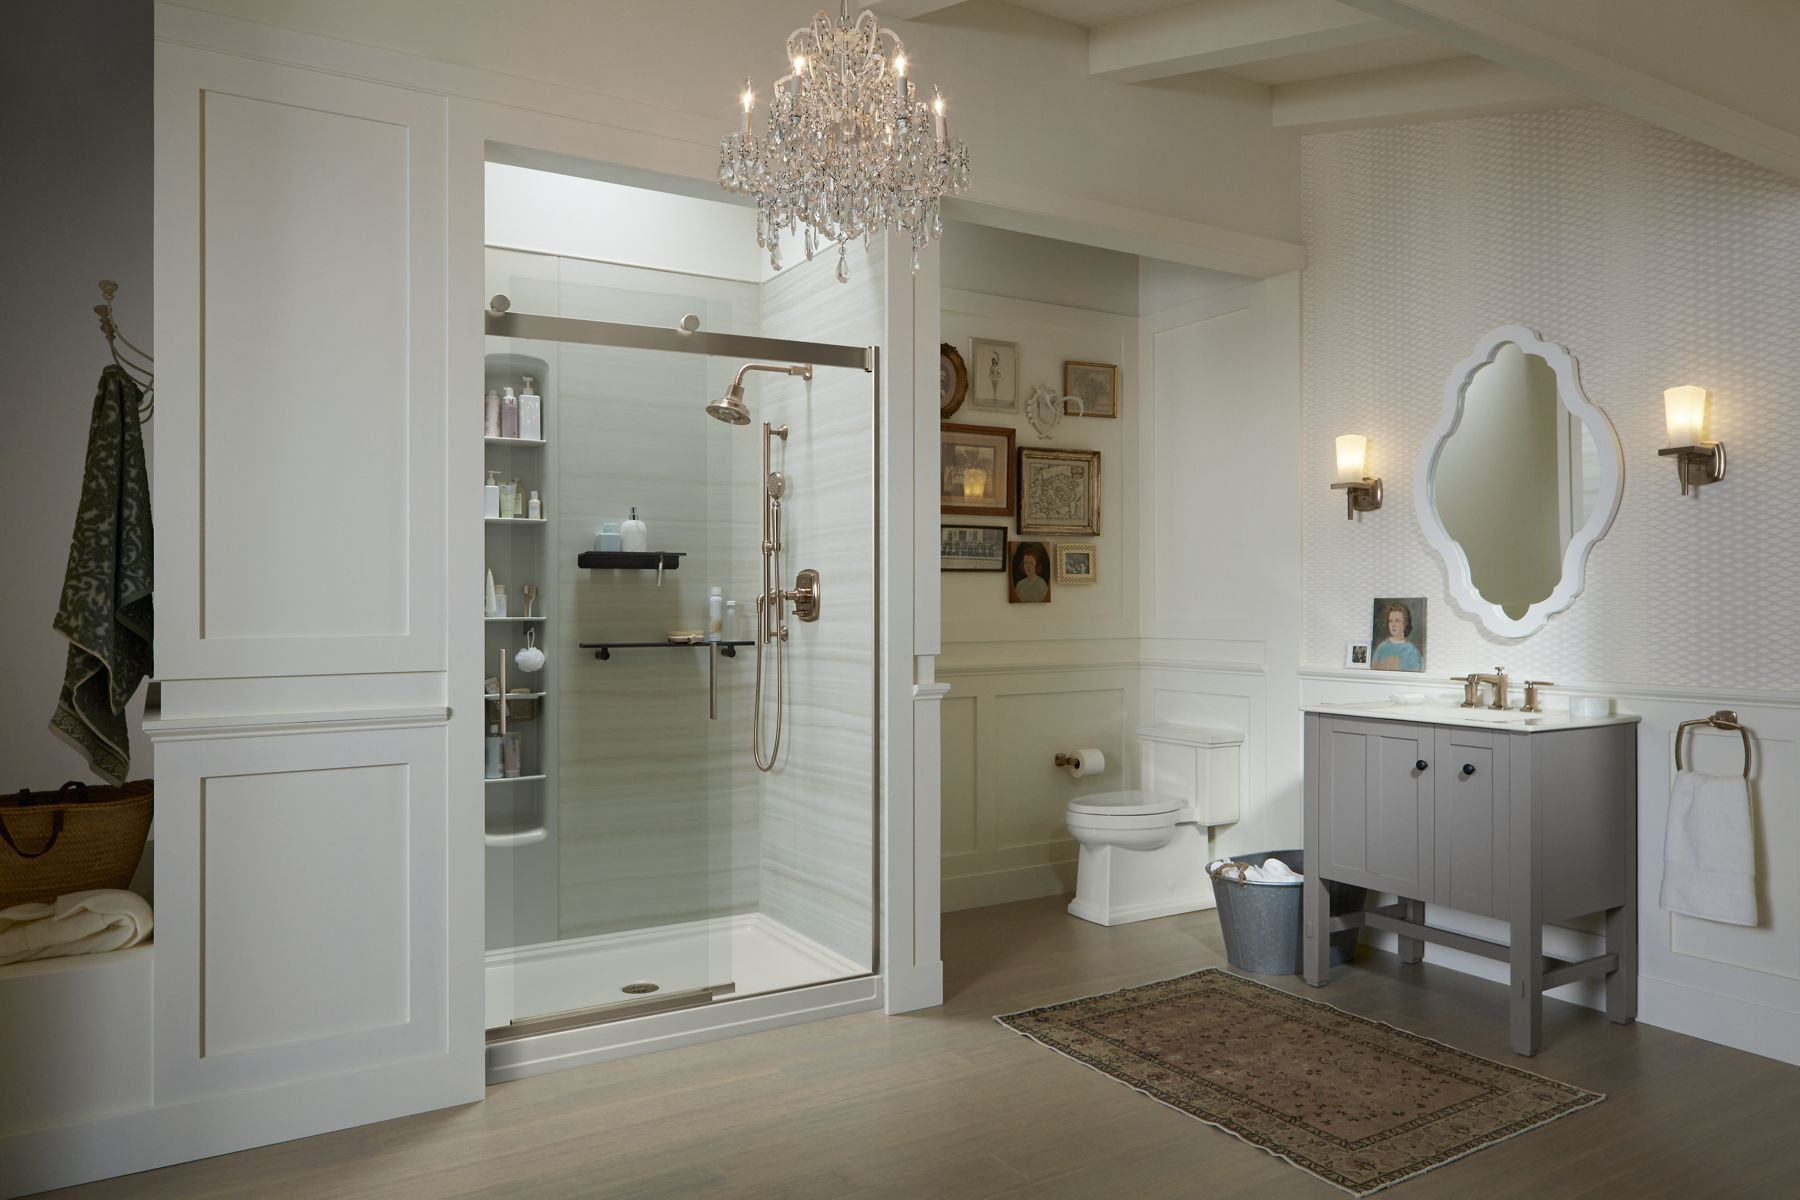 frameless shower doors showering bathroom kohler rh us kohler com